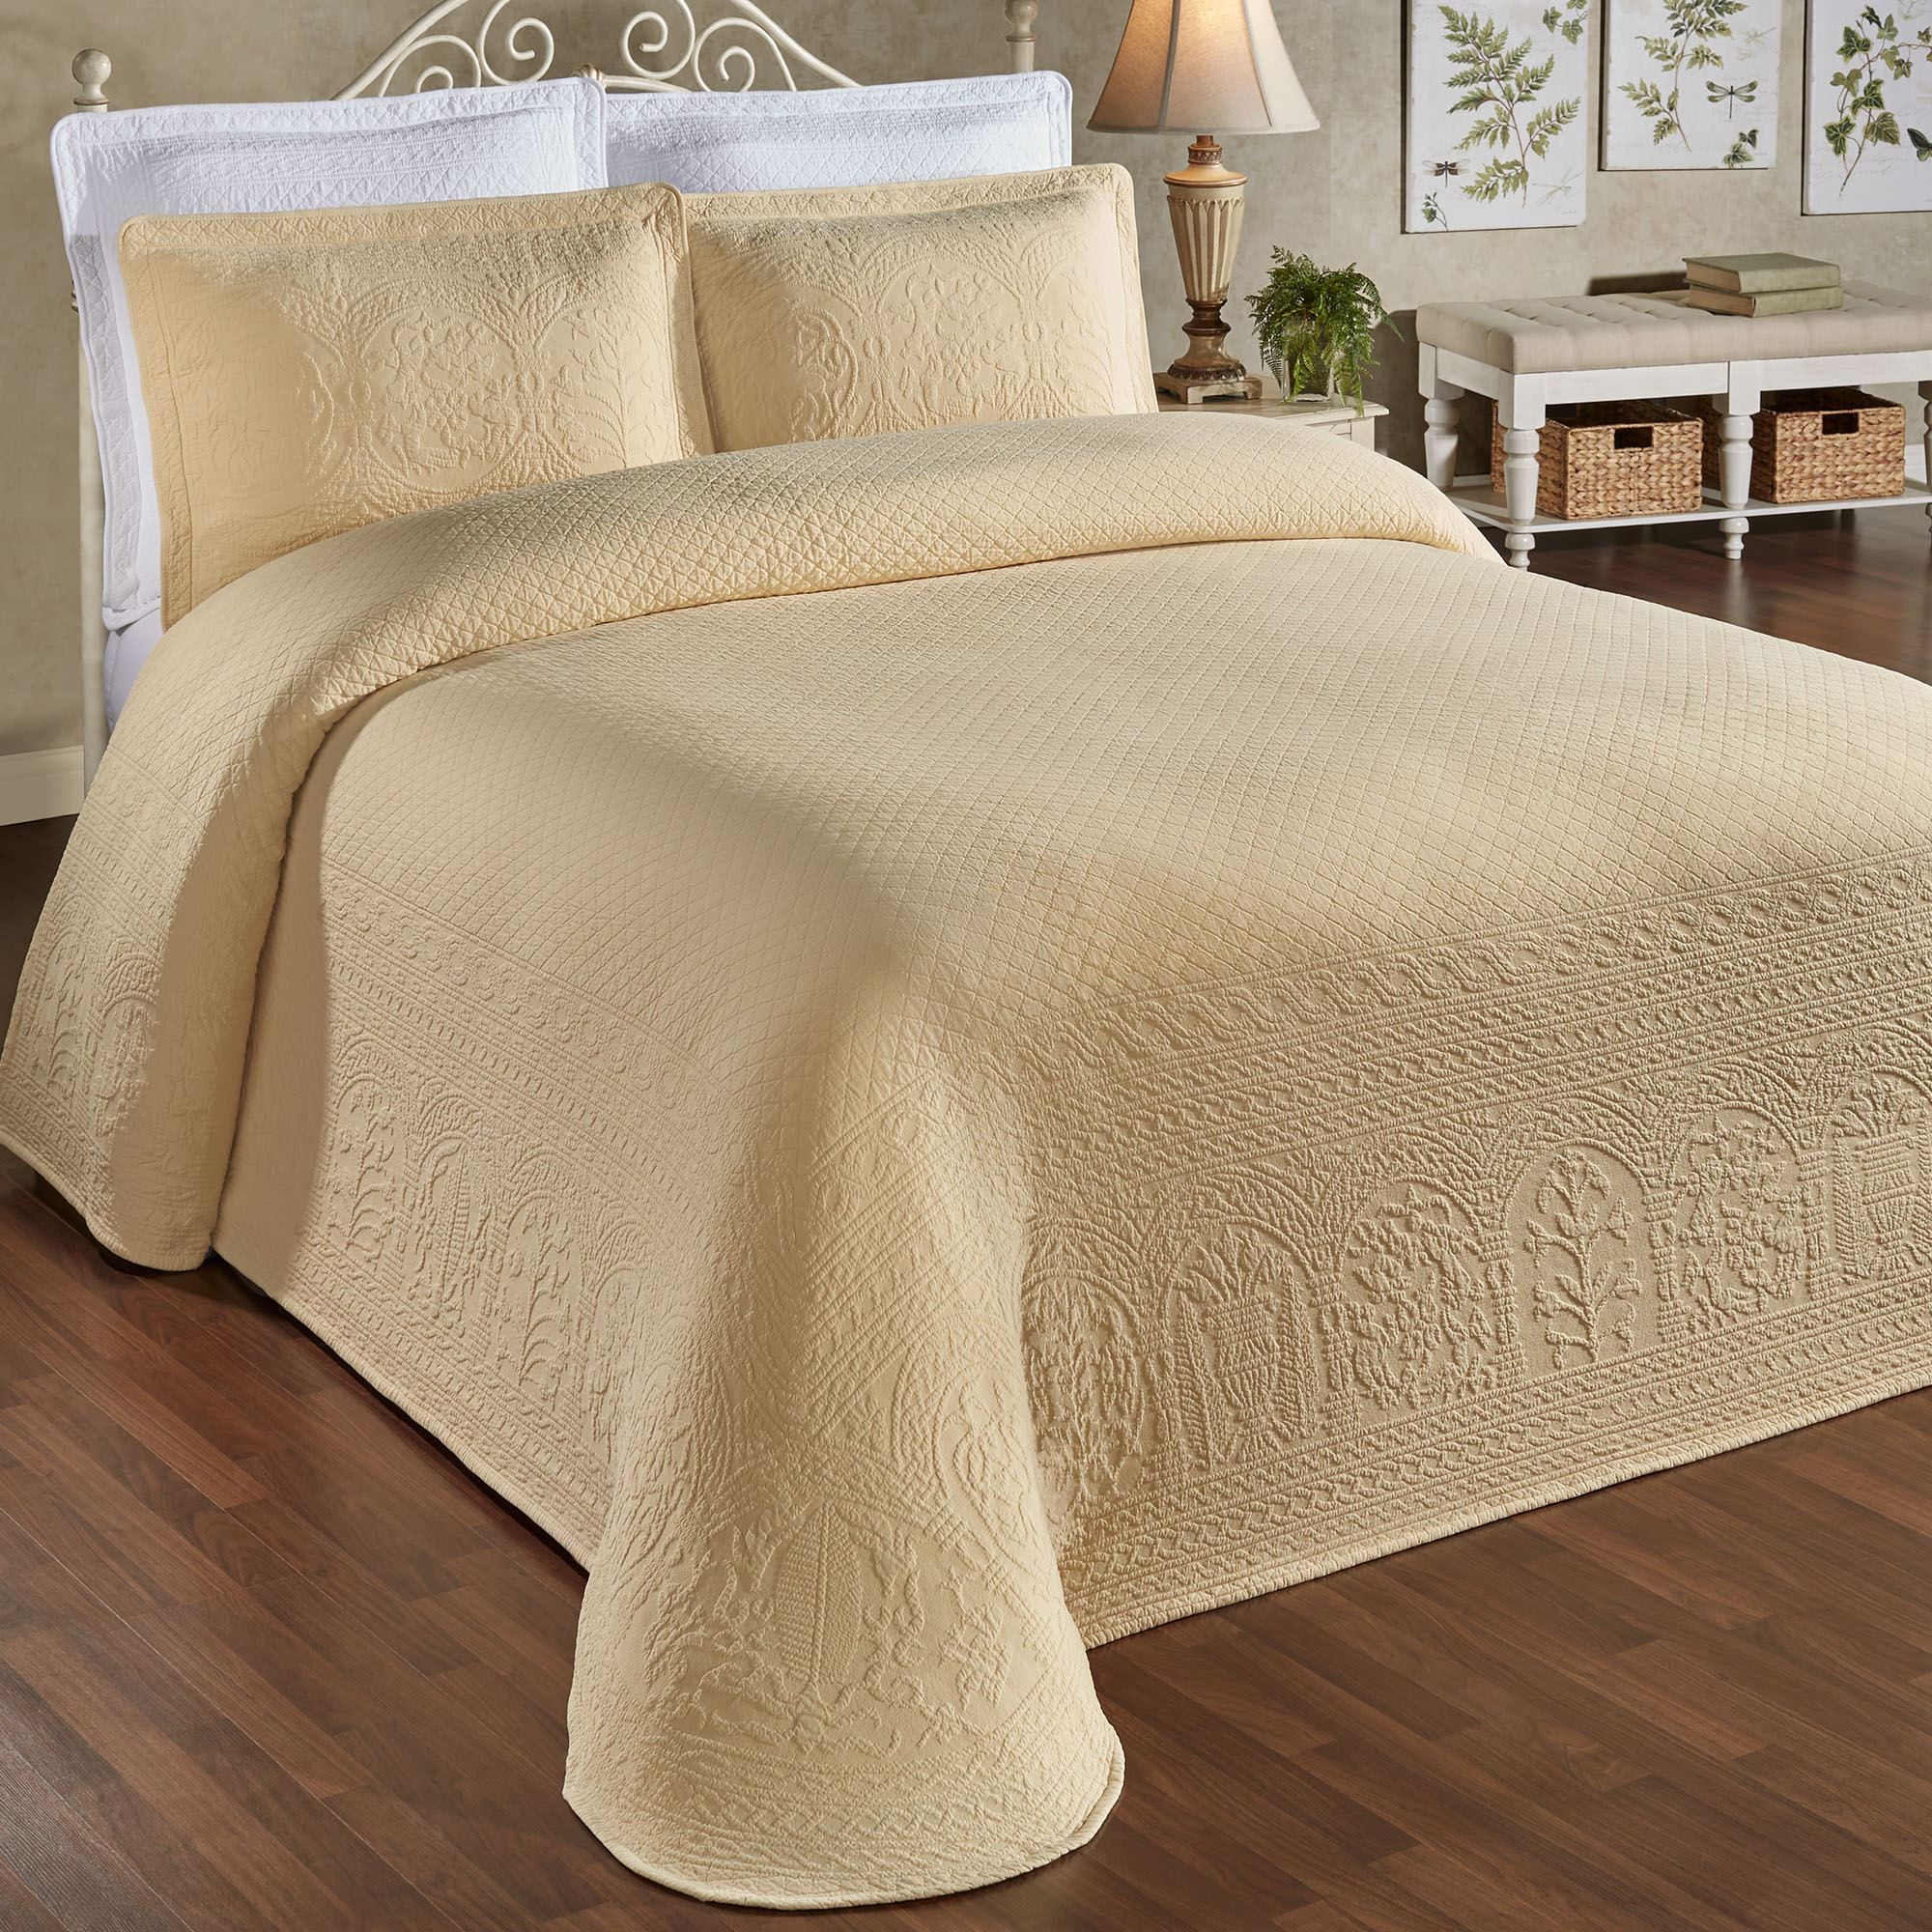 William And Mary Ii Lightweight Woven Matelasse Bedspreads